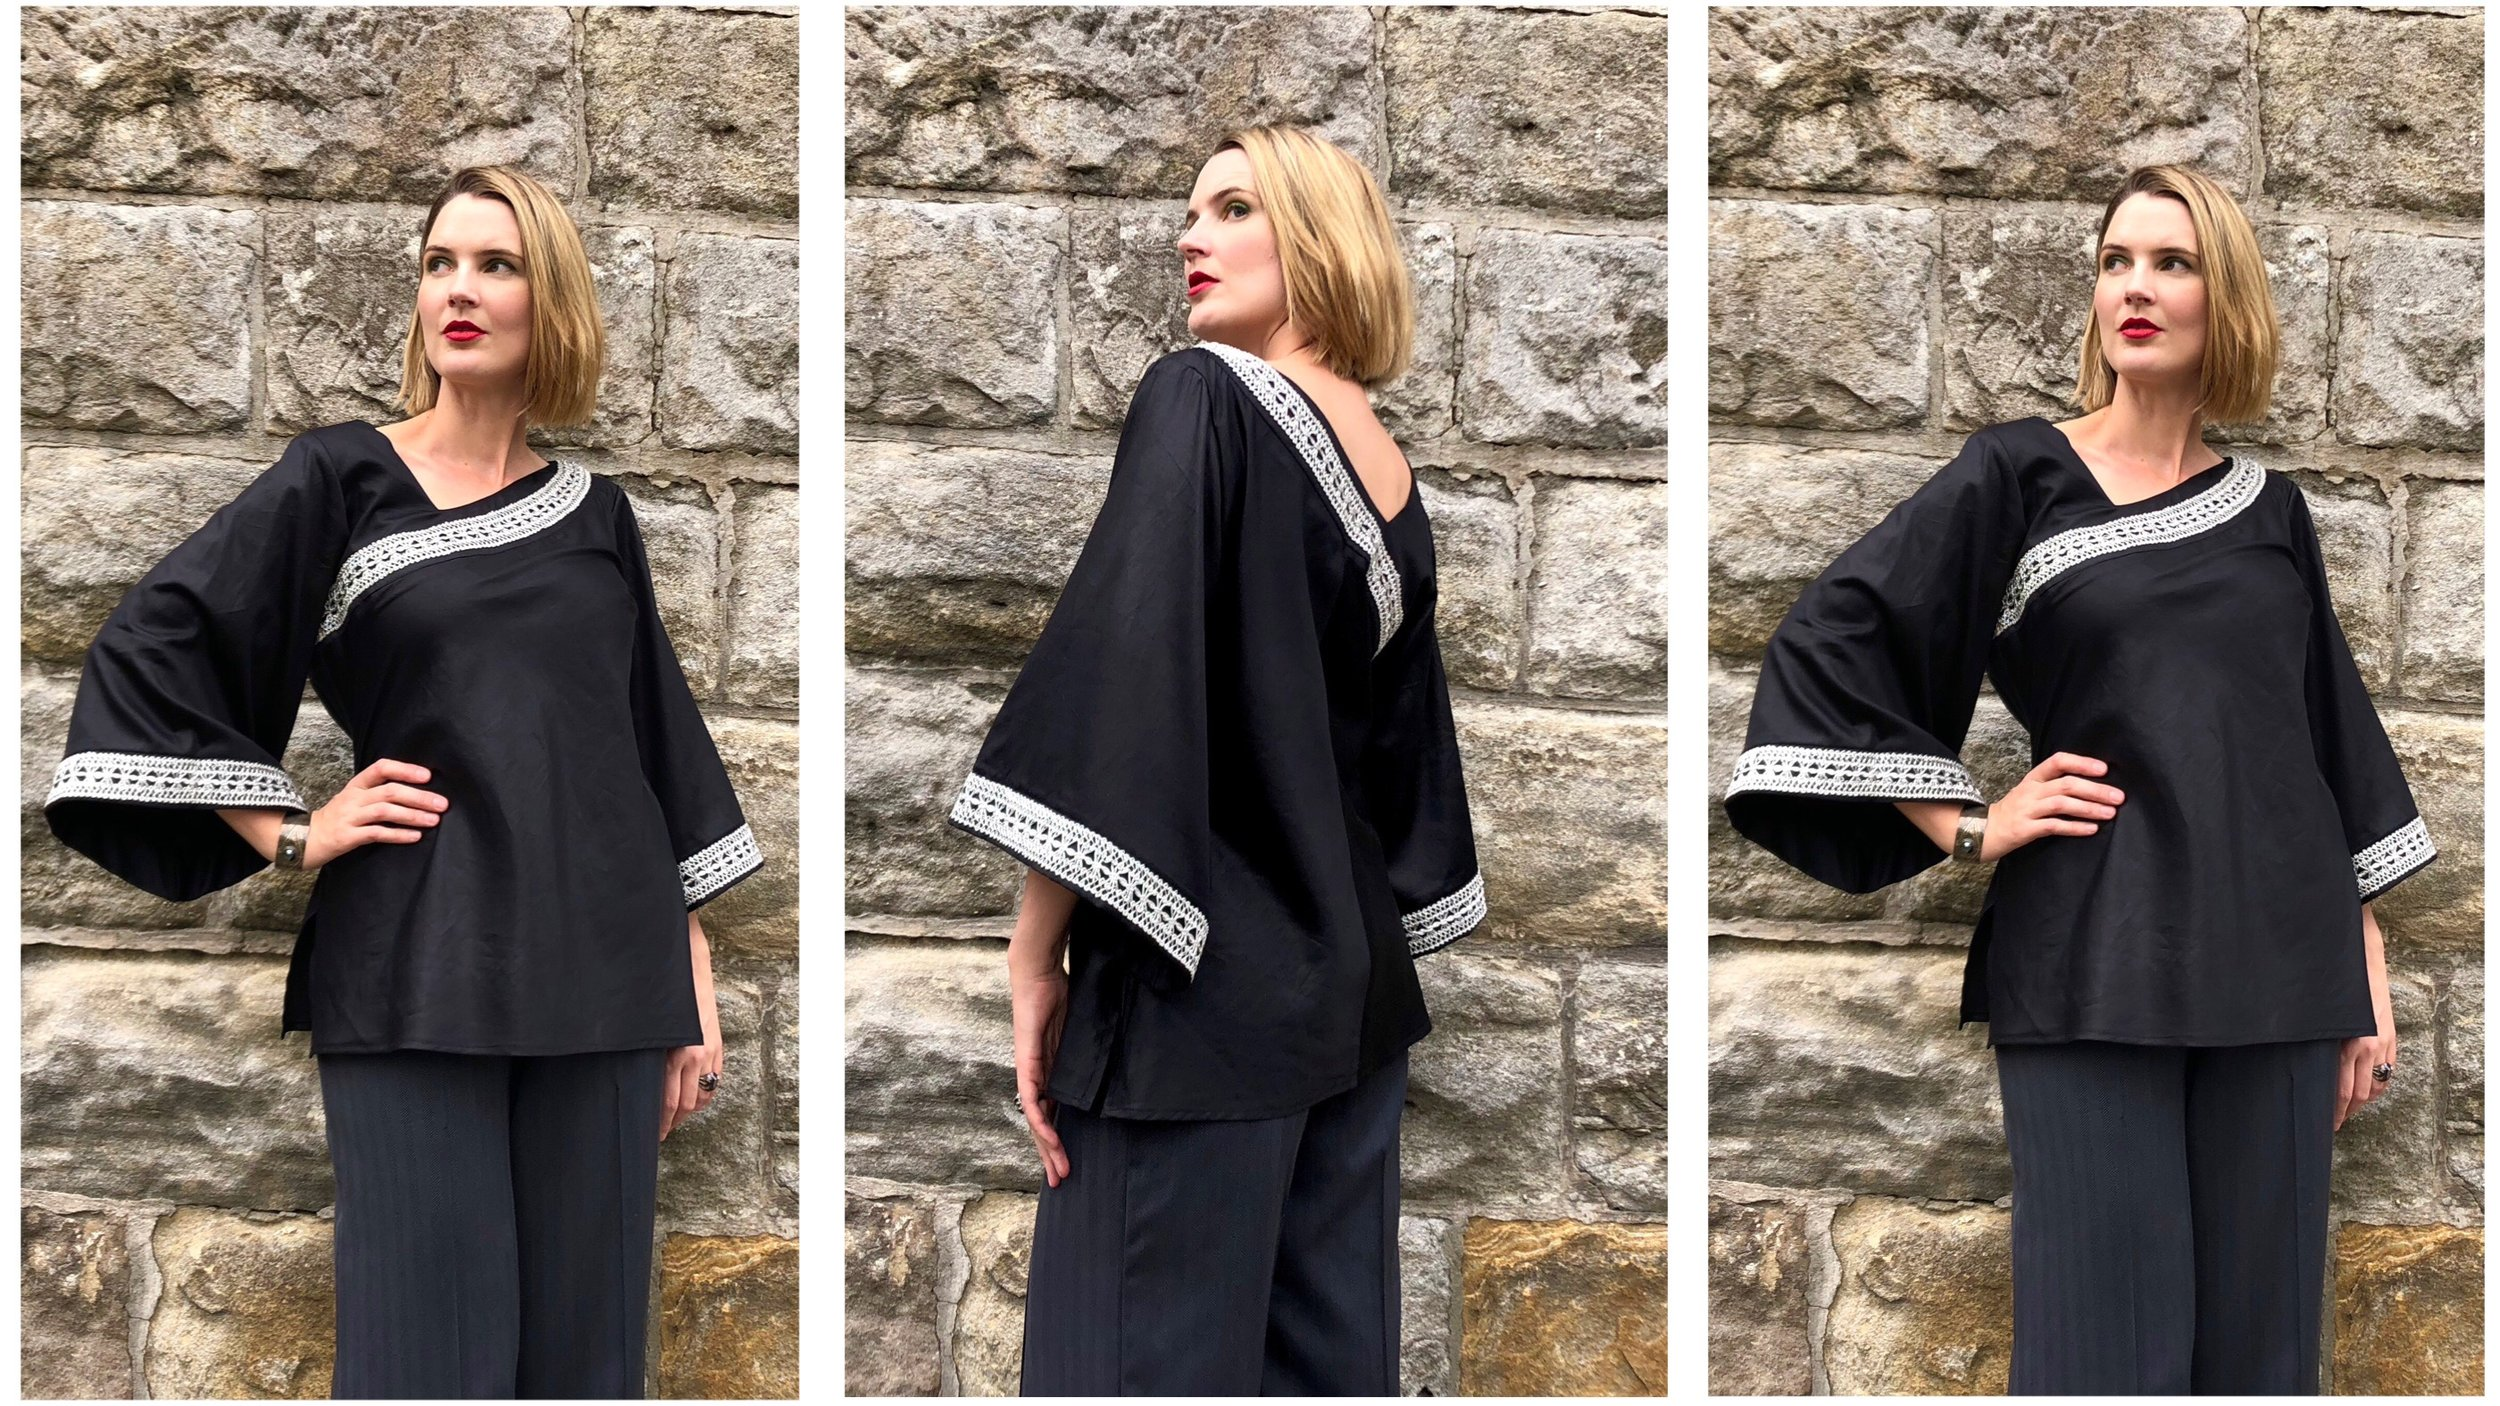 If you must wear black, wear it with style and flair! The silver braid makes this style very unique and dramatic!This design is perfect to wear with pants, jeans or a straight/pencil skirt.    The Black Cotton Asymmetric Bias Blouse ($200 AUD), features a silver metallic vintage braid, and wide flared sleeve.